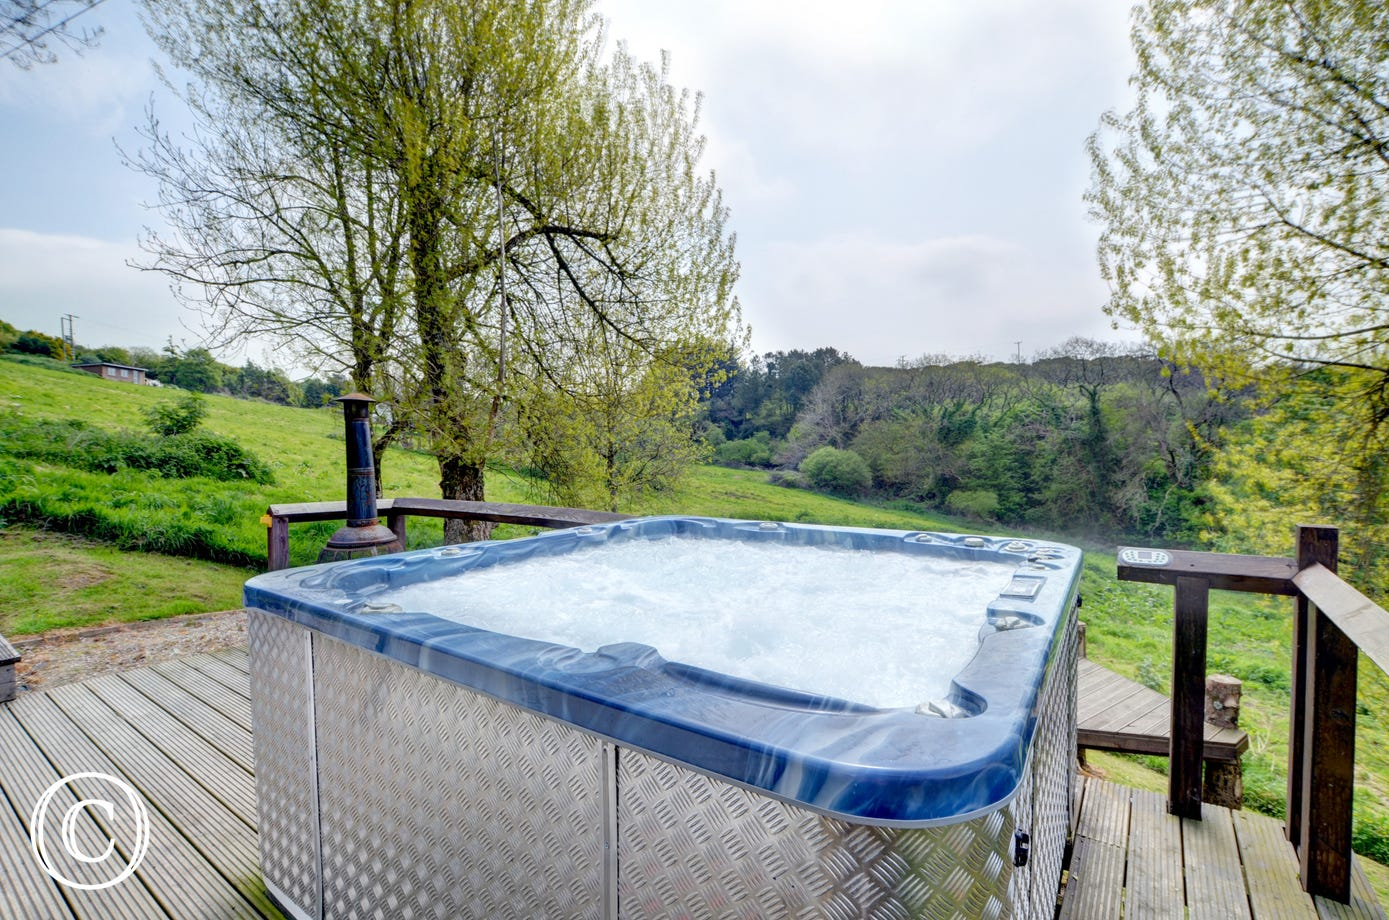 Relax in the hot tub at the end of the day and enjoy the stunning countryside views